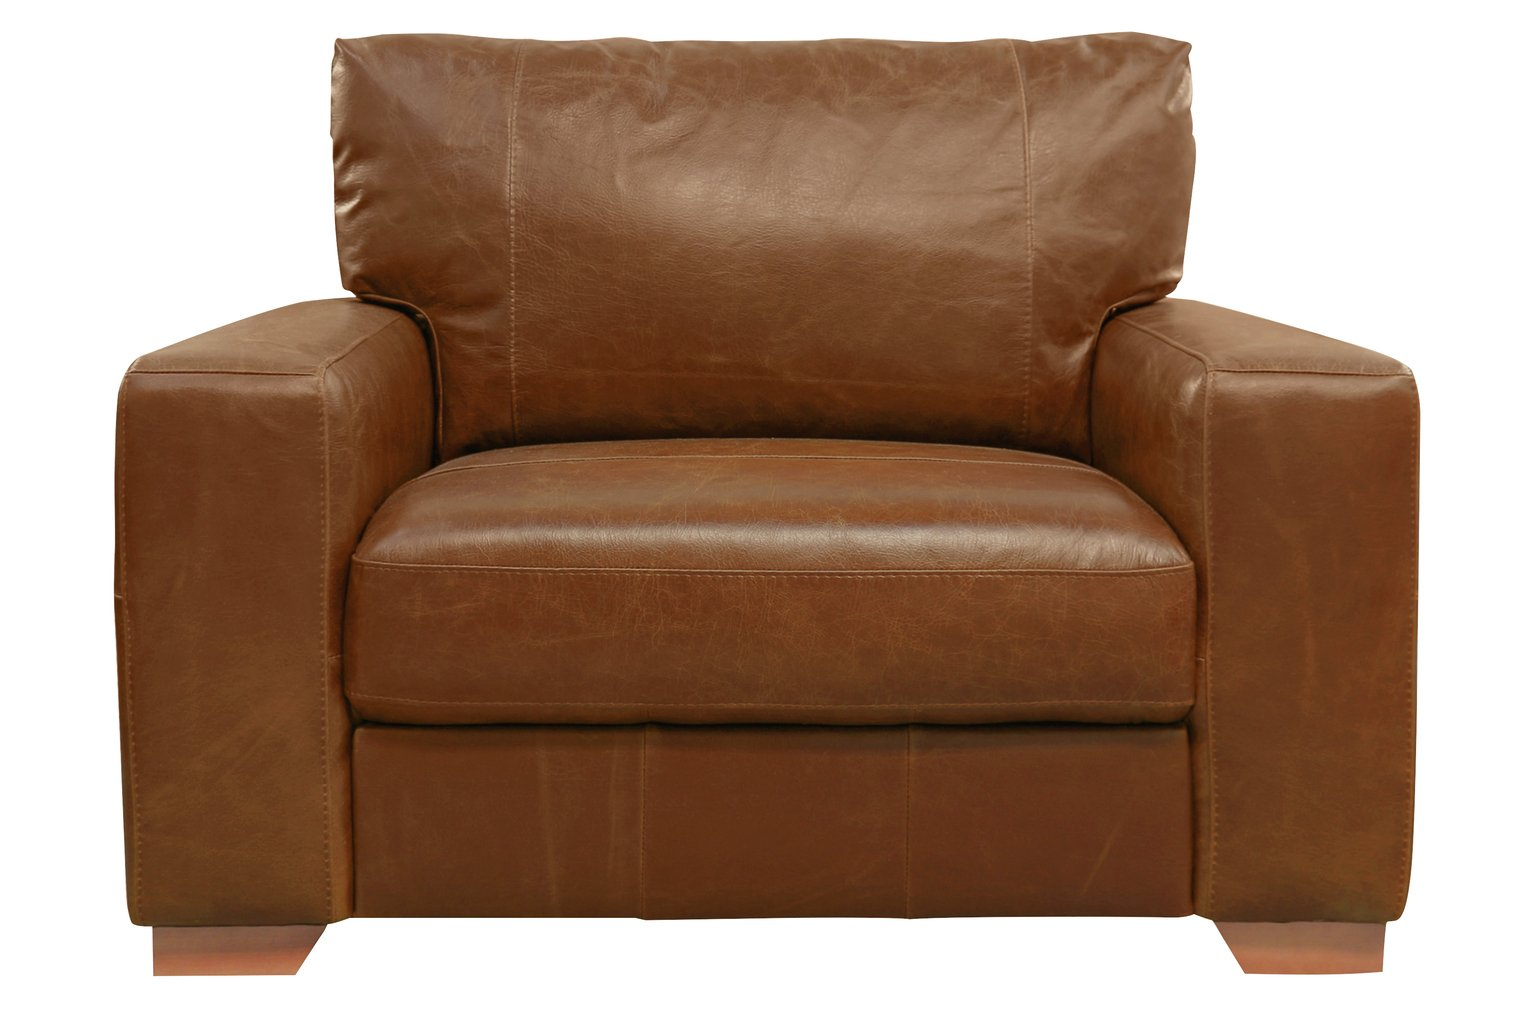 Heart Of House Eton Leather Cuddle Chair   Tan